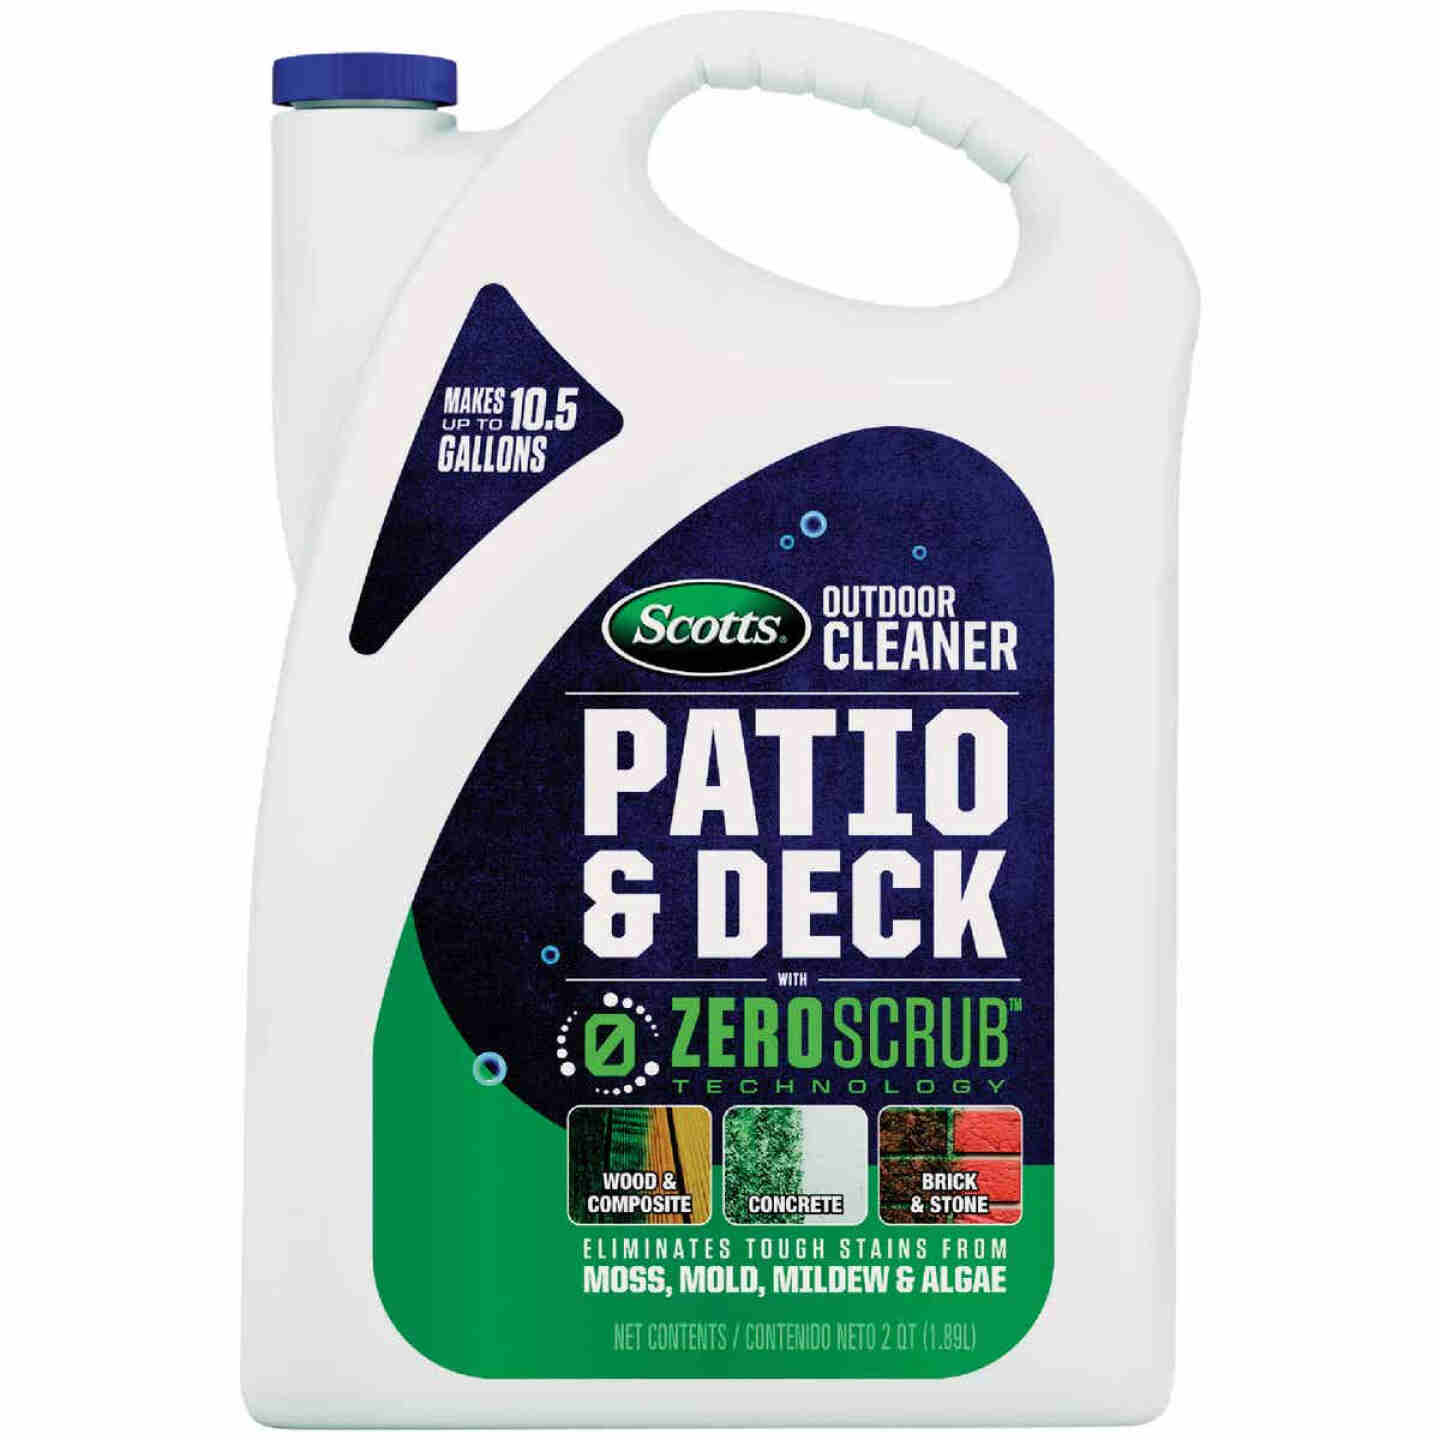 Scotts ZeroScrub 1/2 Gal. Concentrate Patio & Deck Outdoor Cleaner Image 1